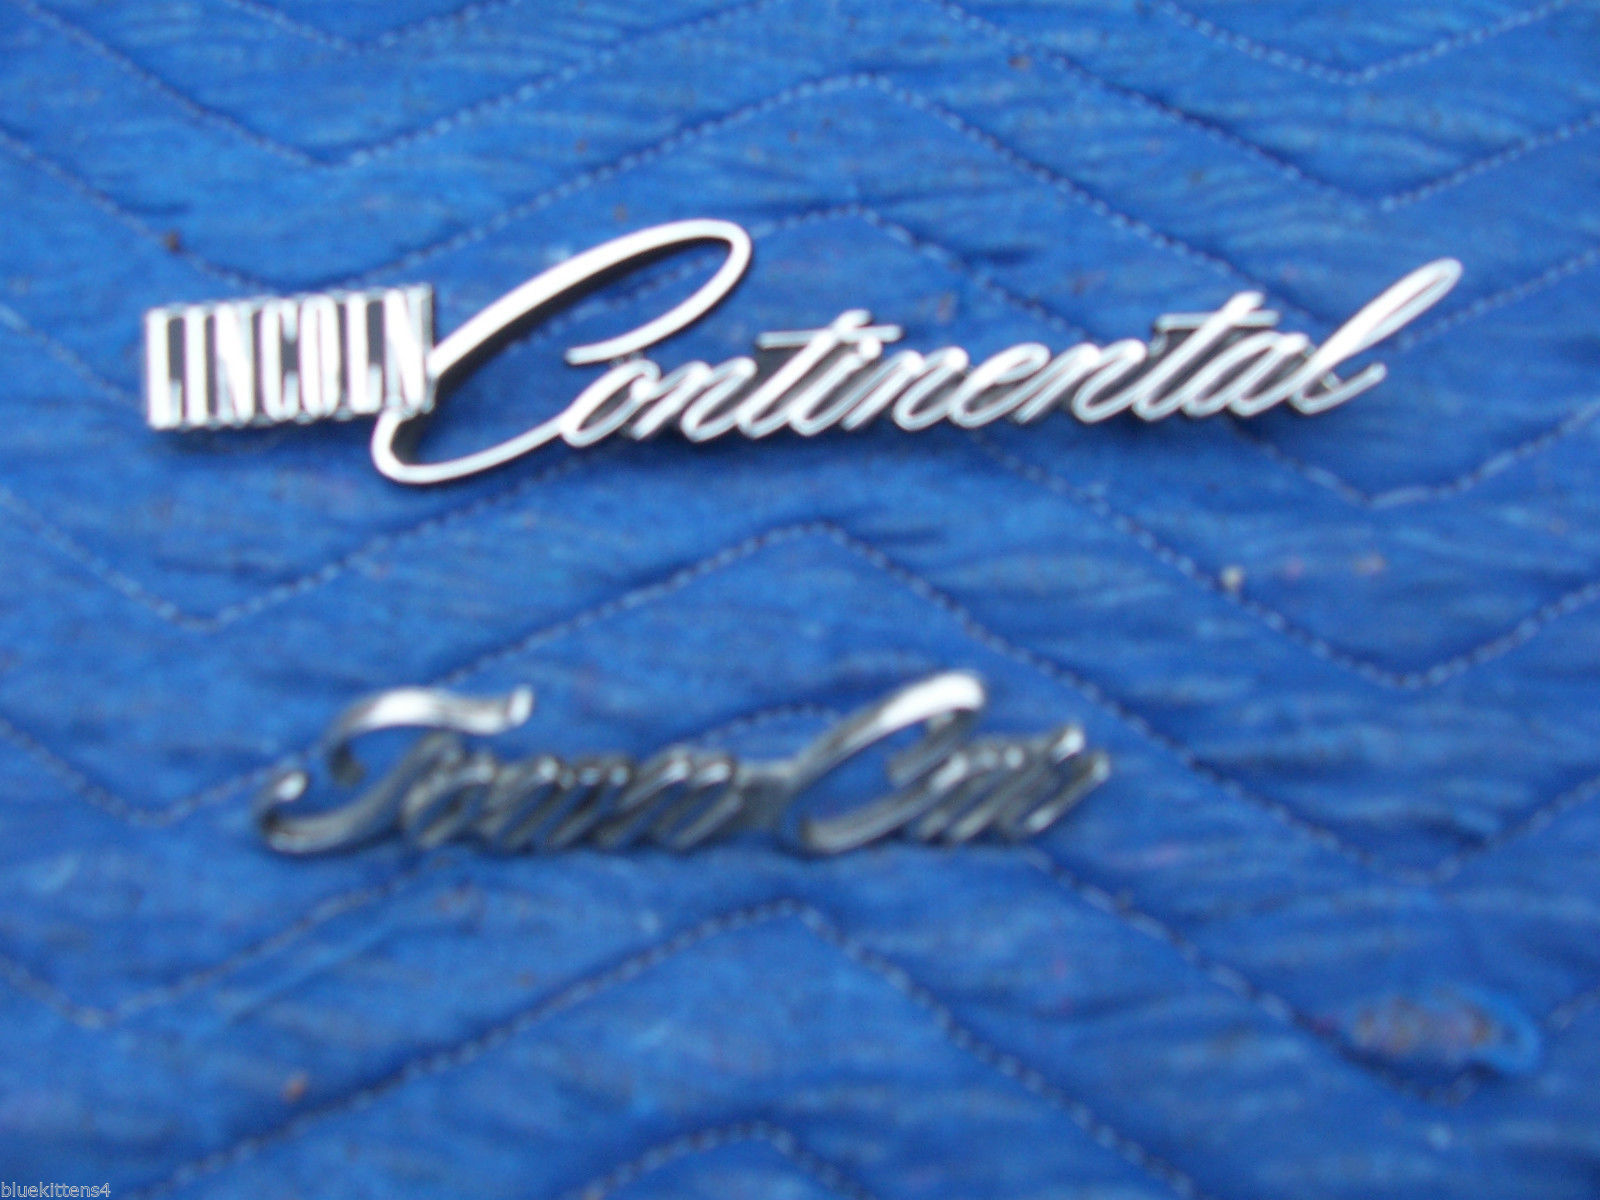 1978 1979 CONTINENTAL TOWNCAR FENDER TRIM EMBLEM ORNAMENT OEM USED LINCOLN PART